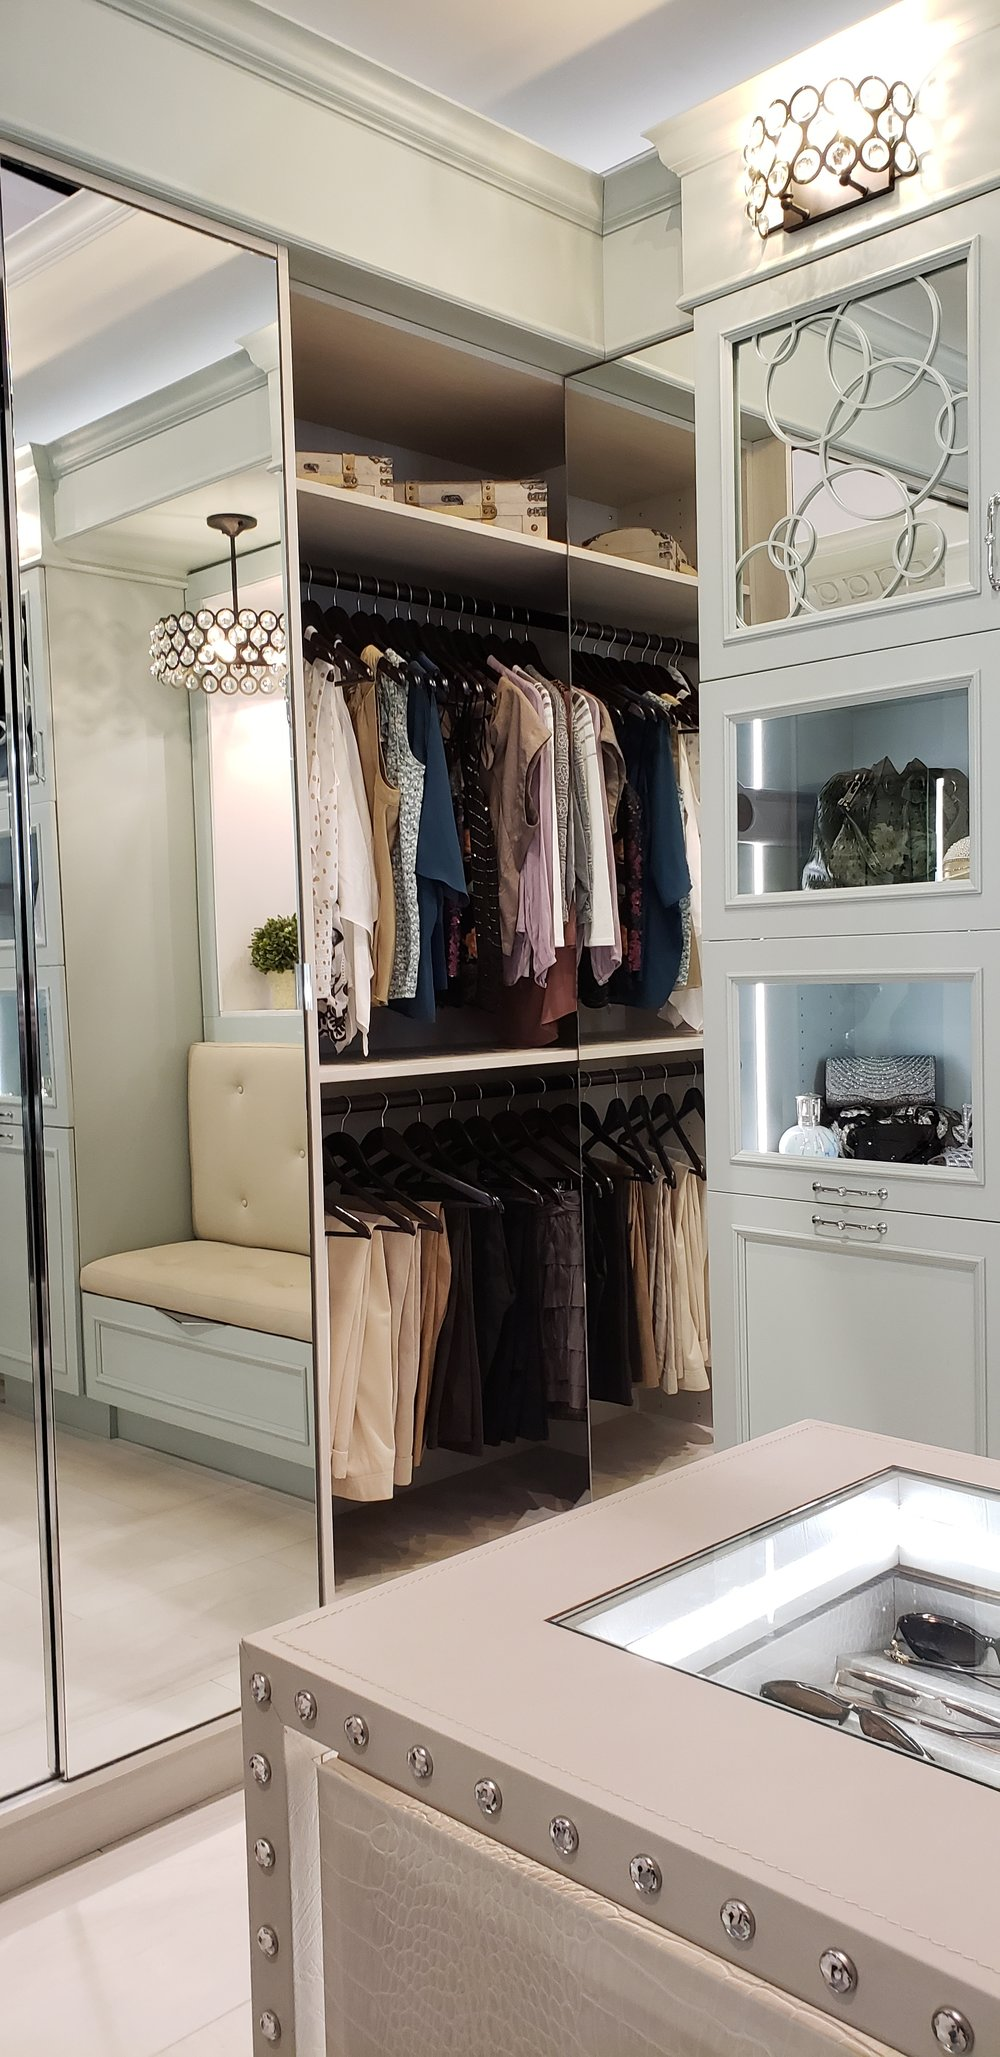 Do you think they would notice if I took up residence here? I mean this closet may have very well been my bedroom.